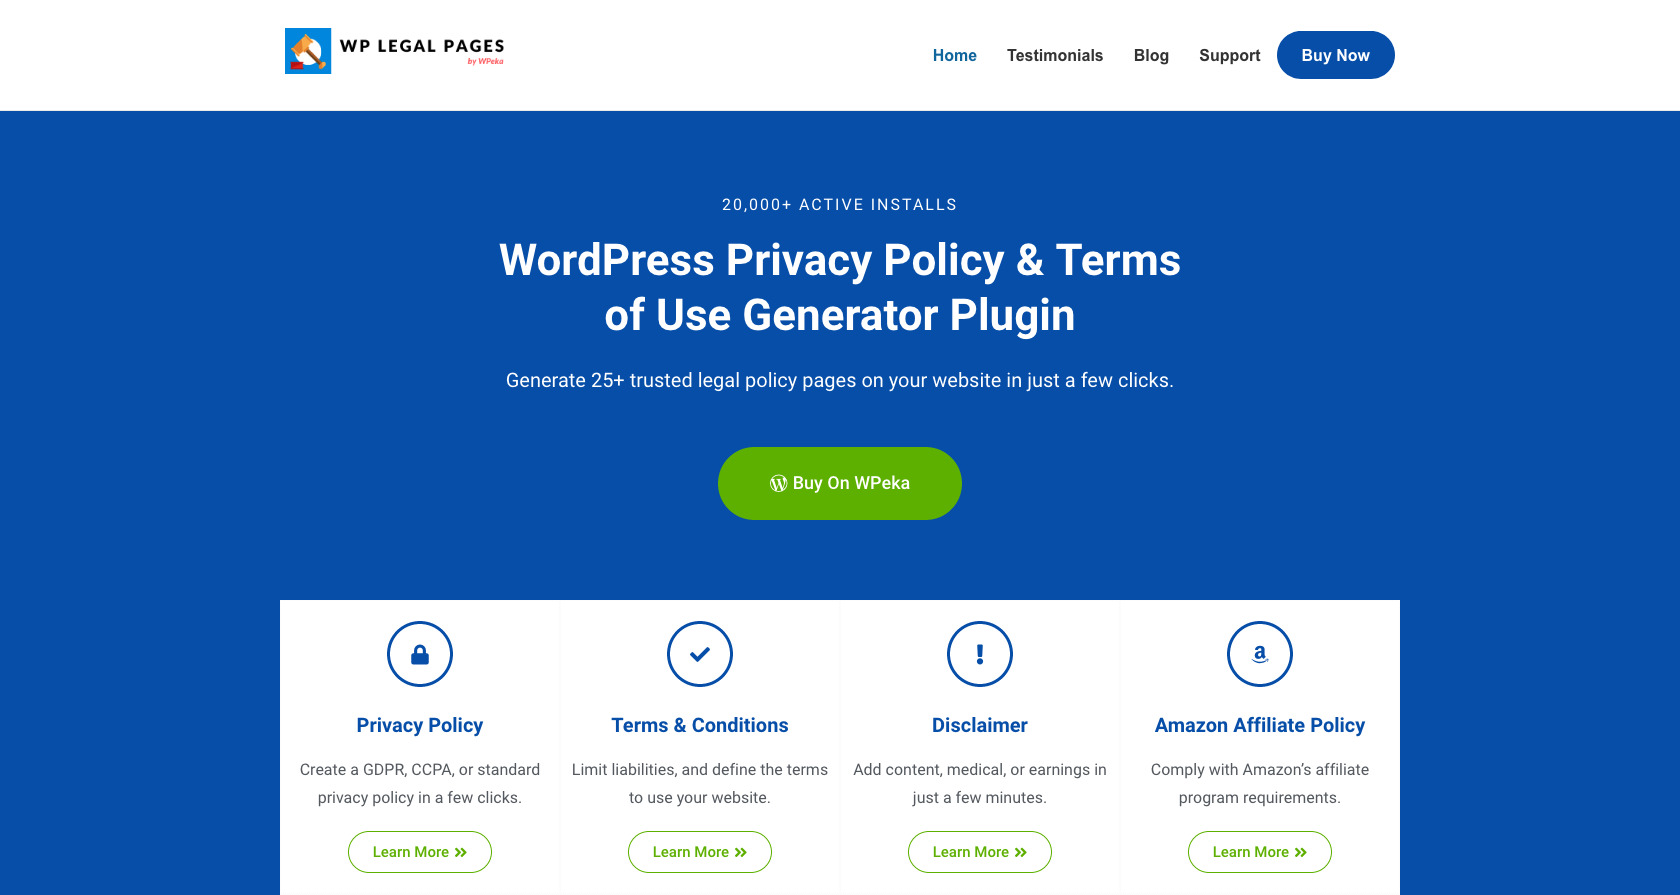 WP Legal Pages Pro- WordPress privacy policy plugin